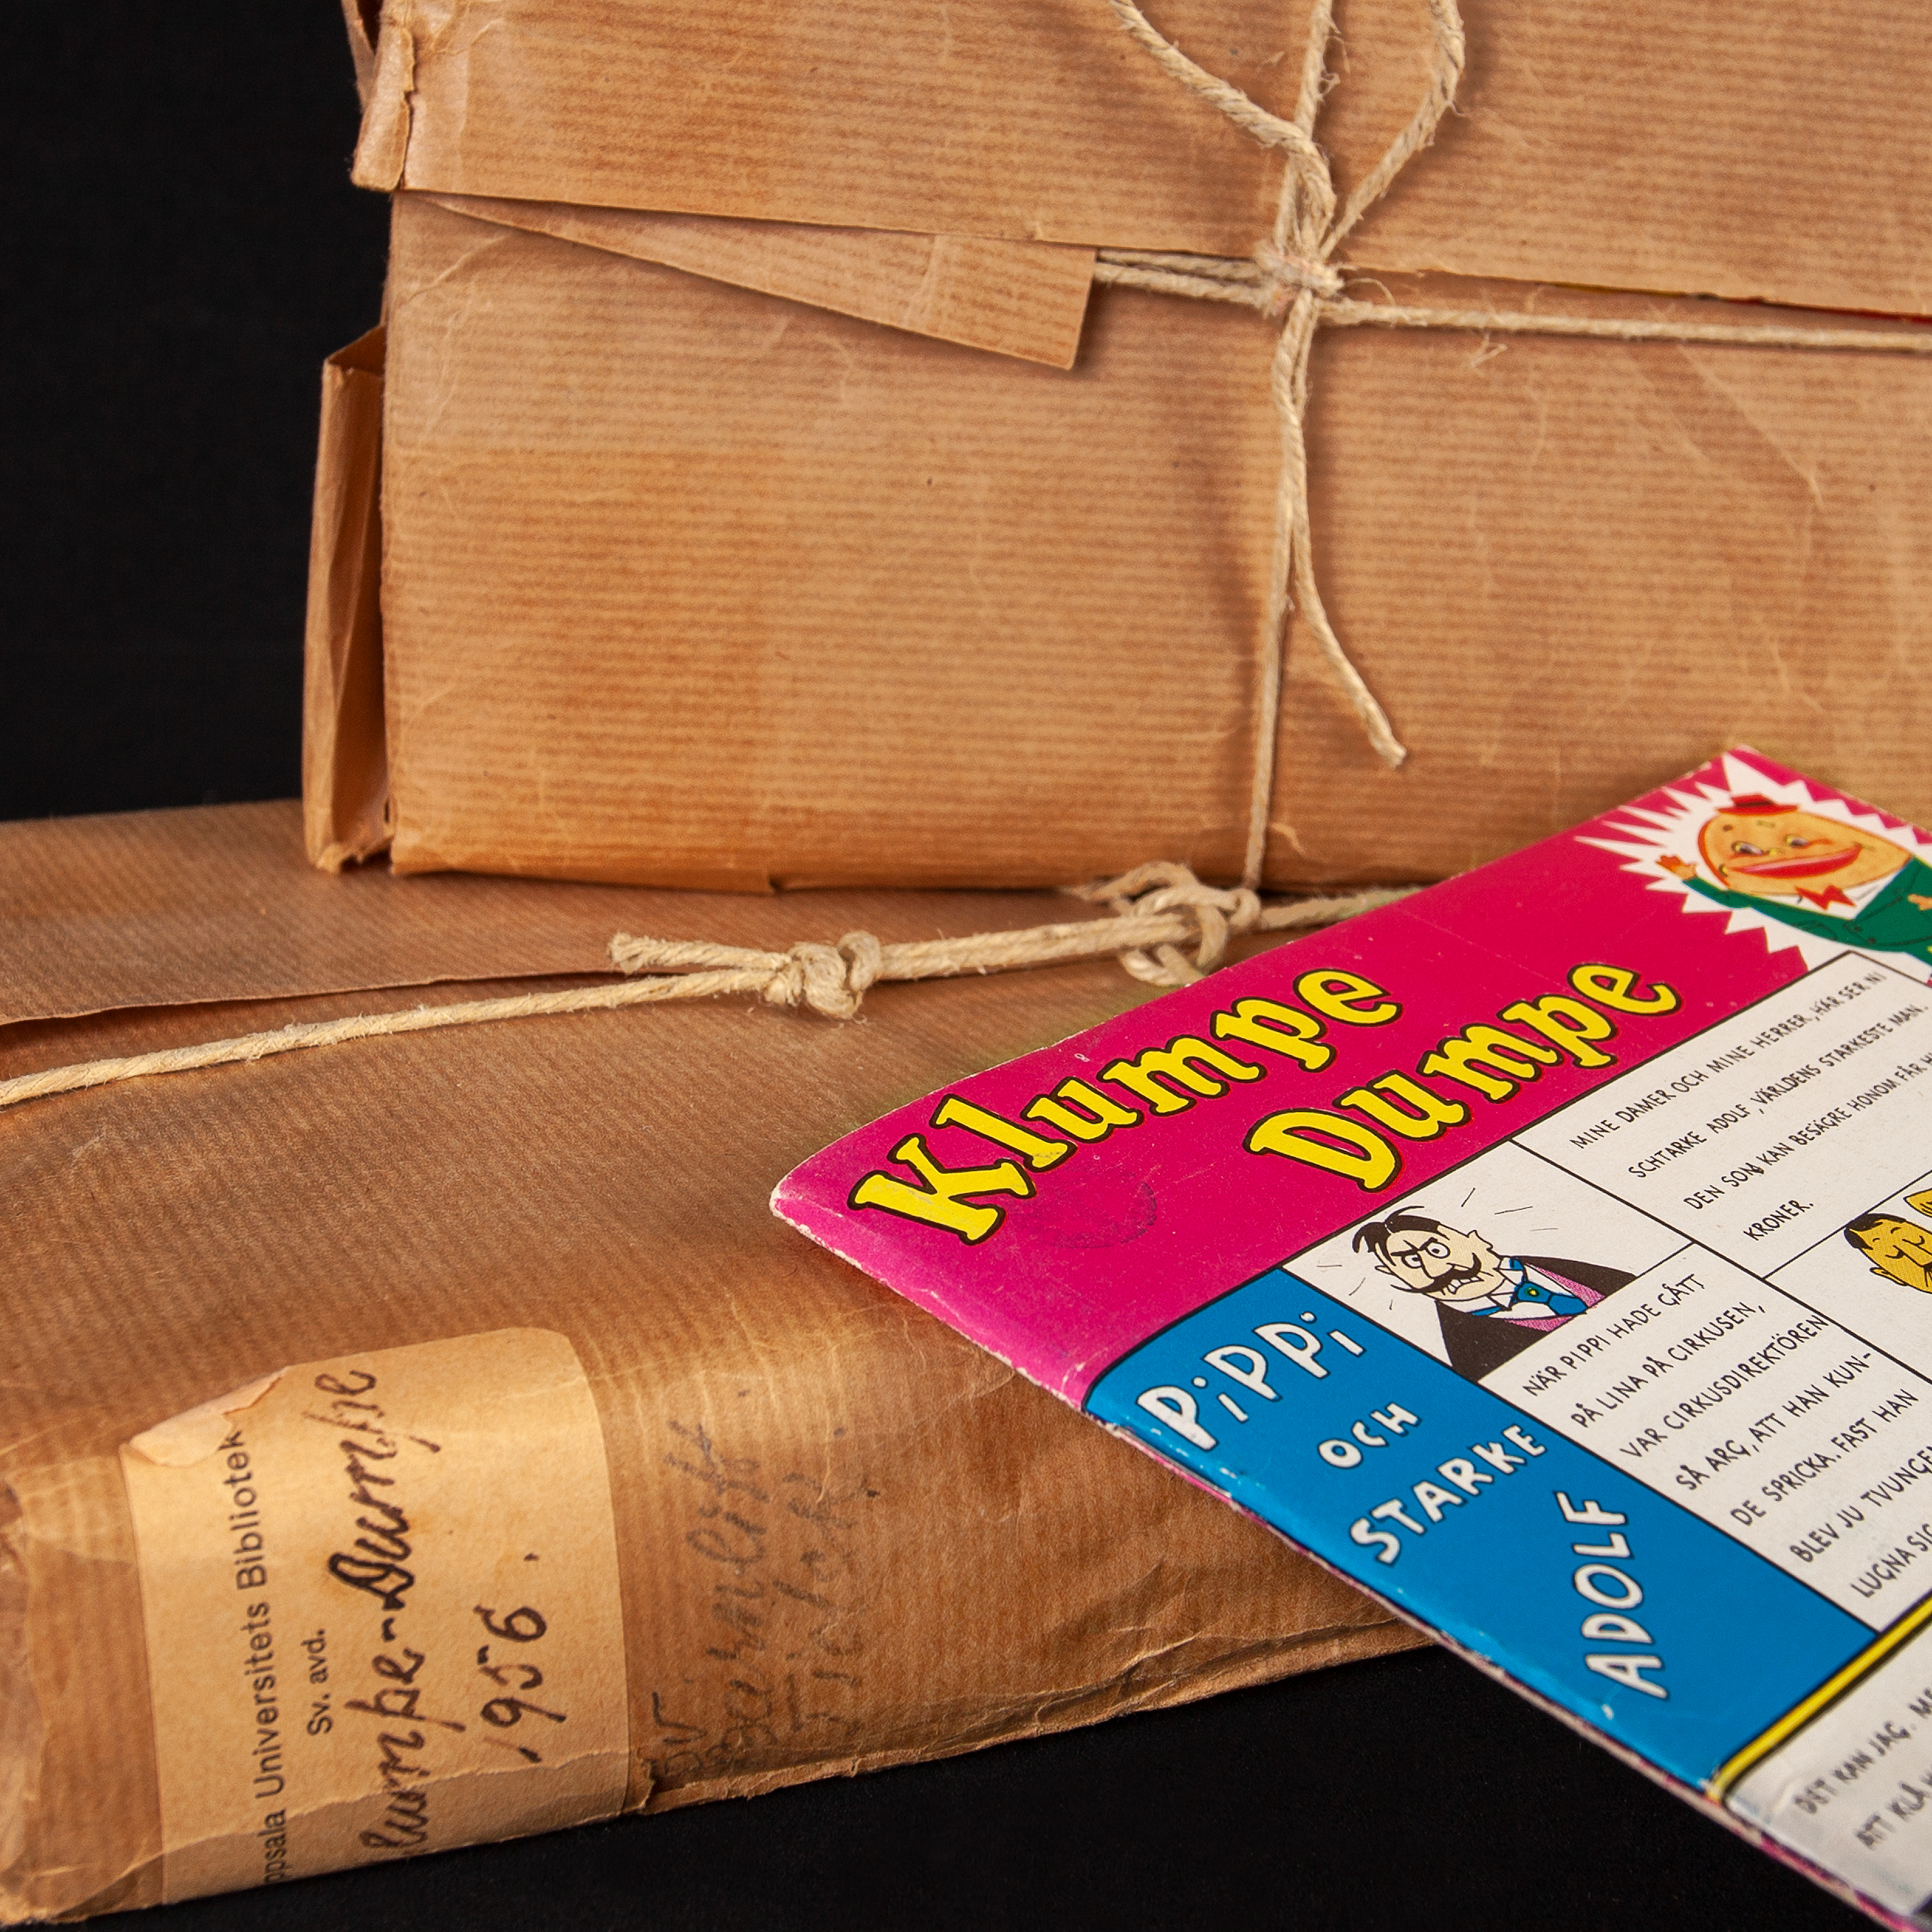 Comics are peaking out of a brown paper parcel  bound with string